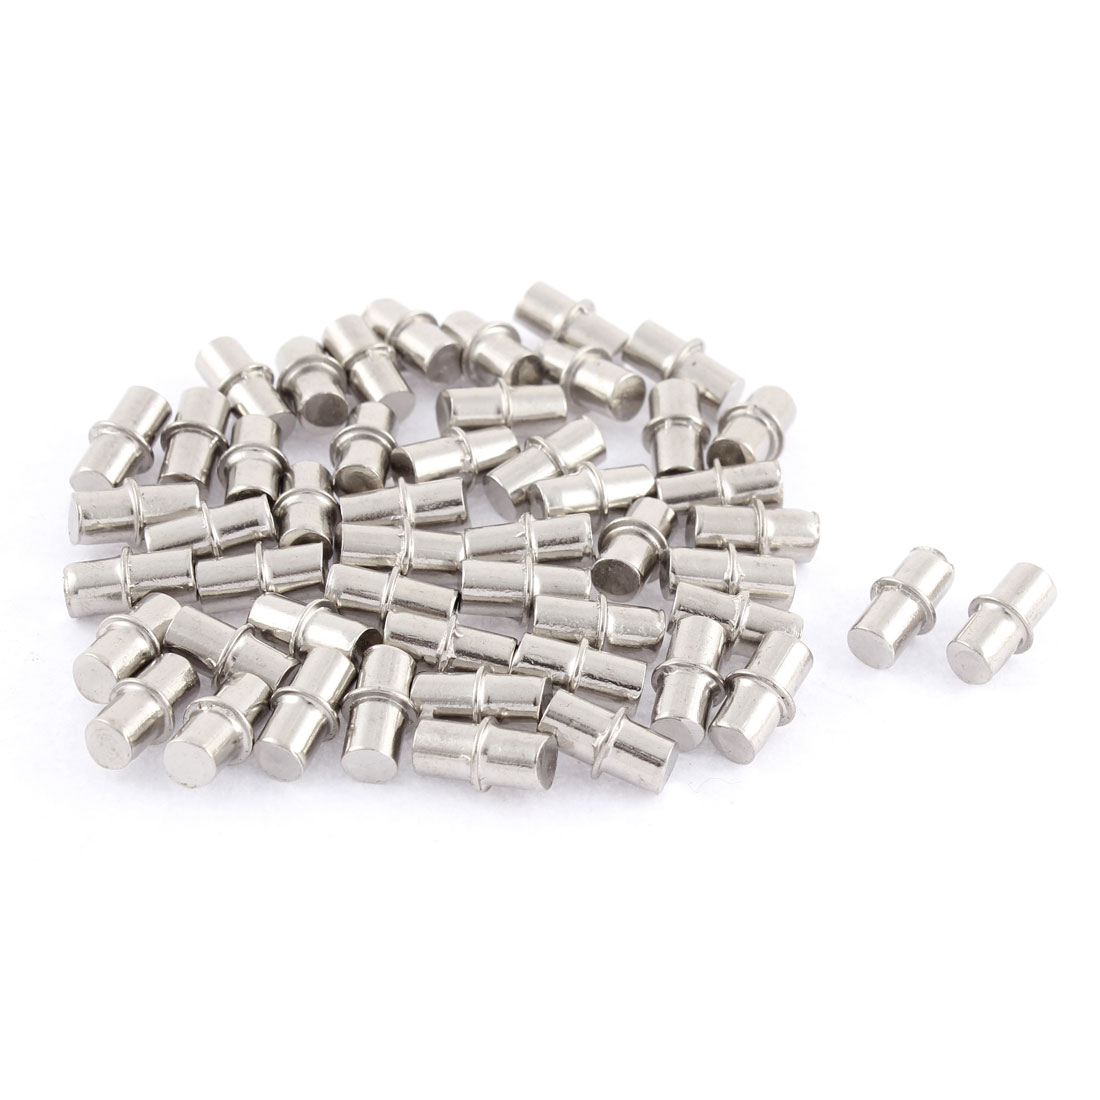 6mm x 14mm Furniture Cupboard Hardware Metal Shelf Support Pins Silver Tone 50 Pcs